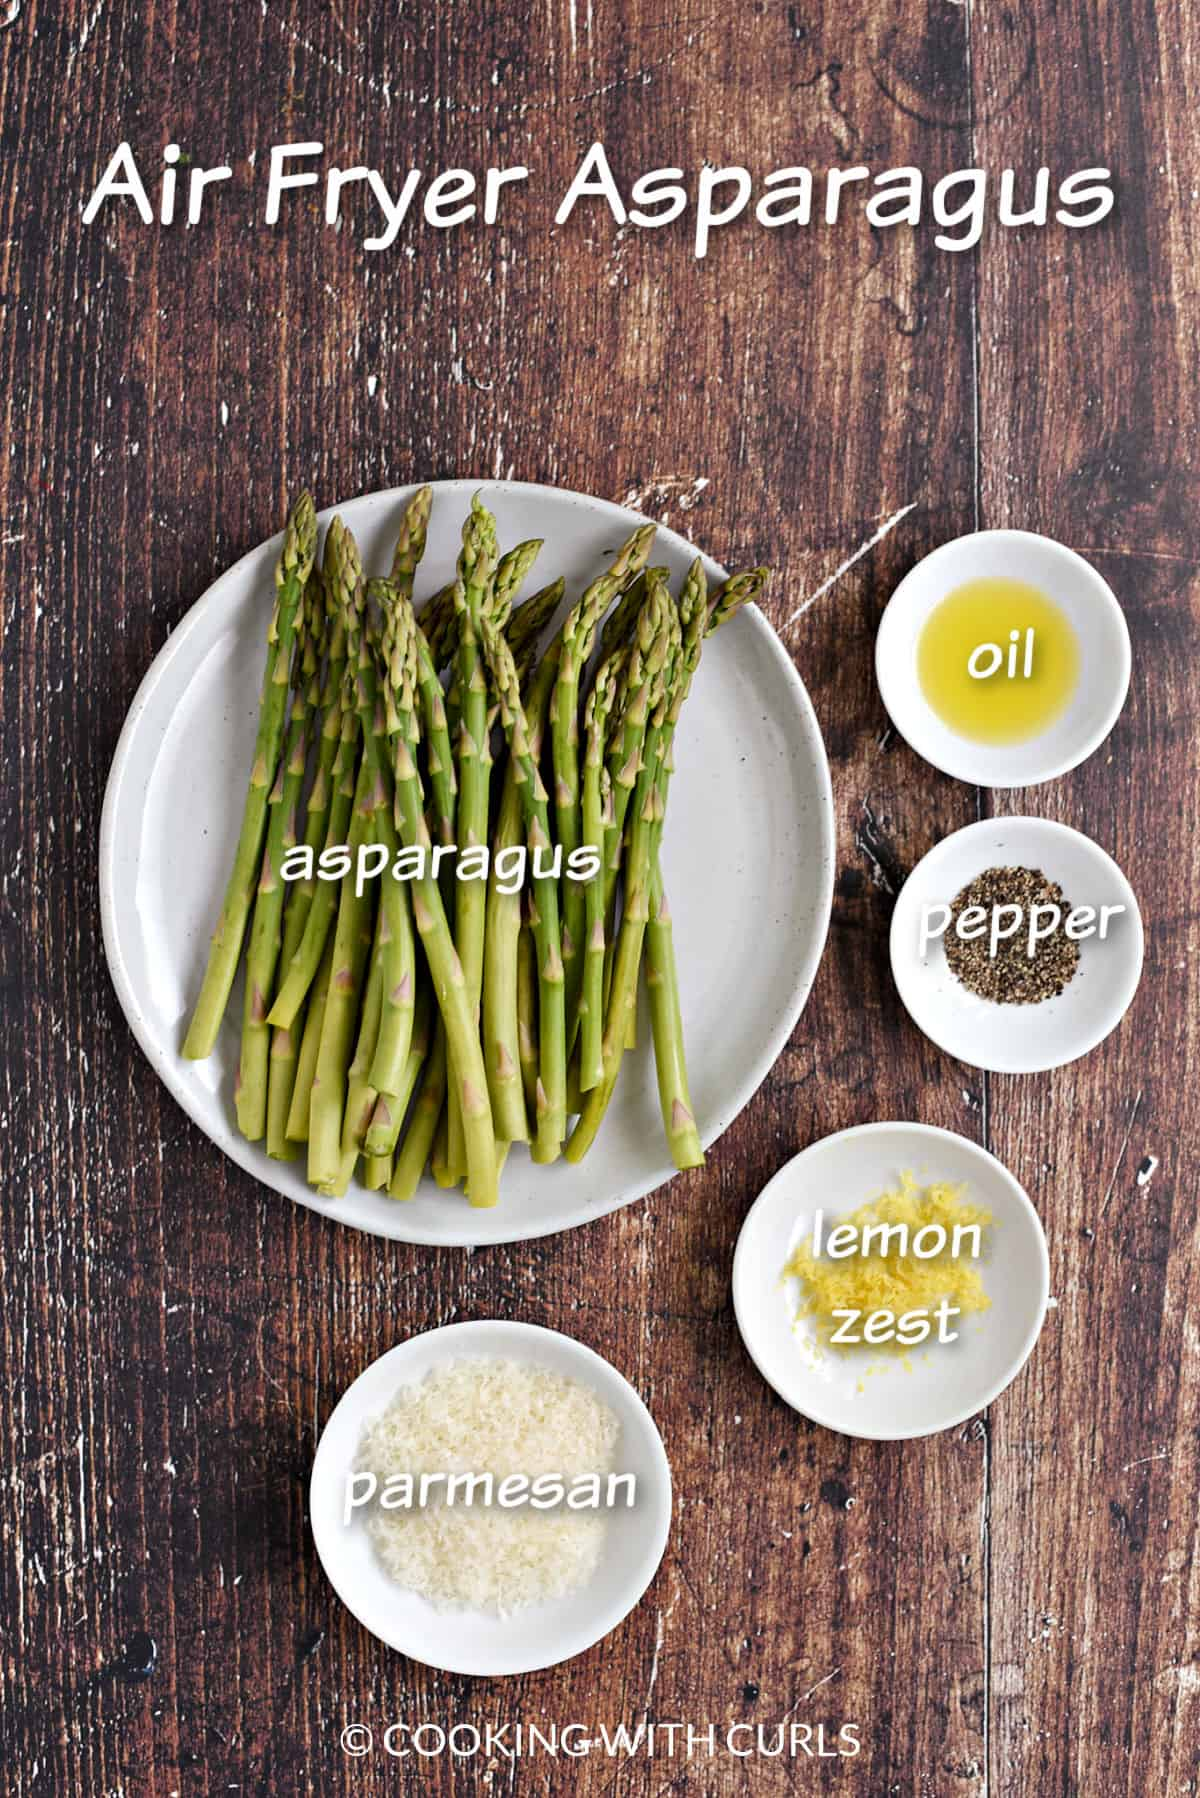 Asparagus spears, oil, pepper, lemon zest, and parmesan cheese in white bowls.